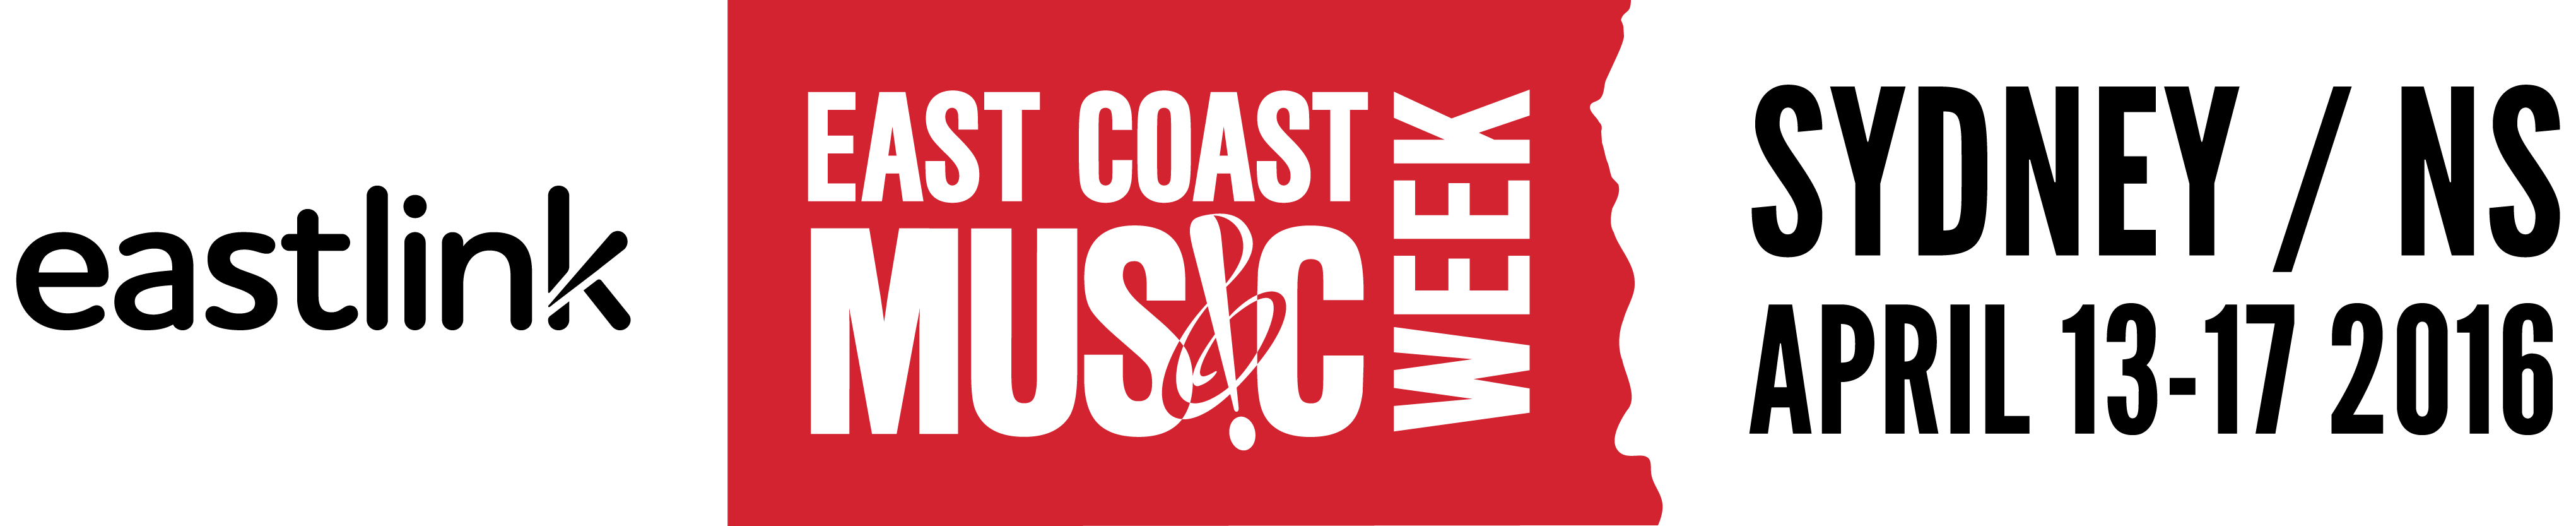 East Coast Music Awards | April 13-17, 2016